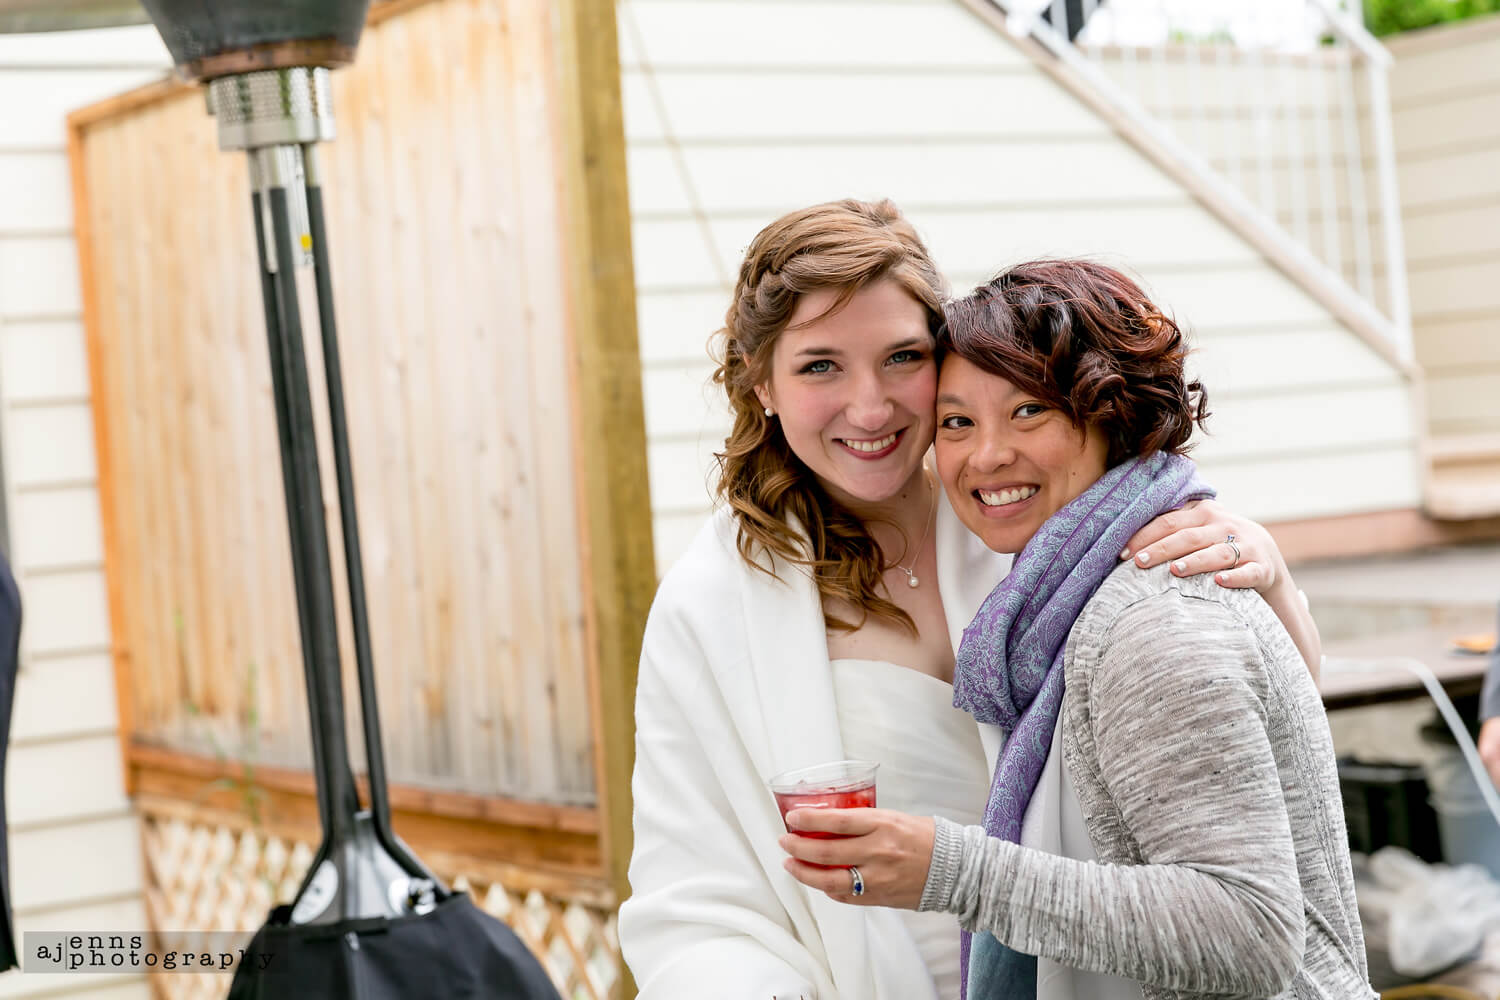 The bride and her friend who gave her a venue for the wedding